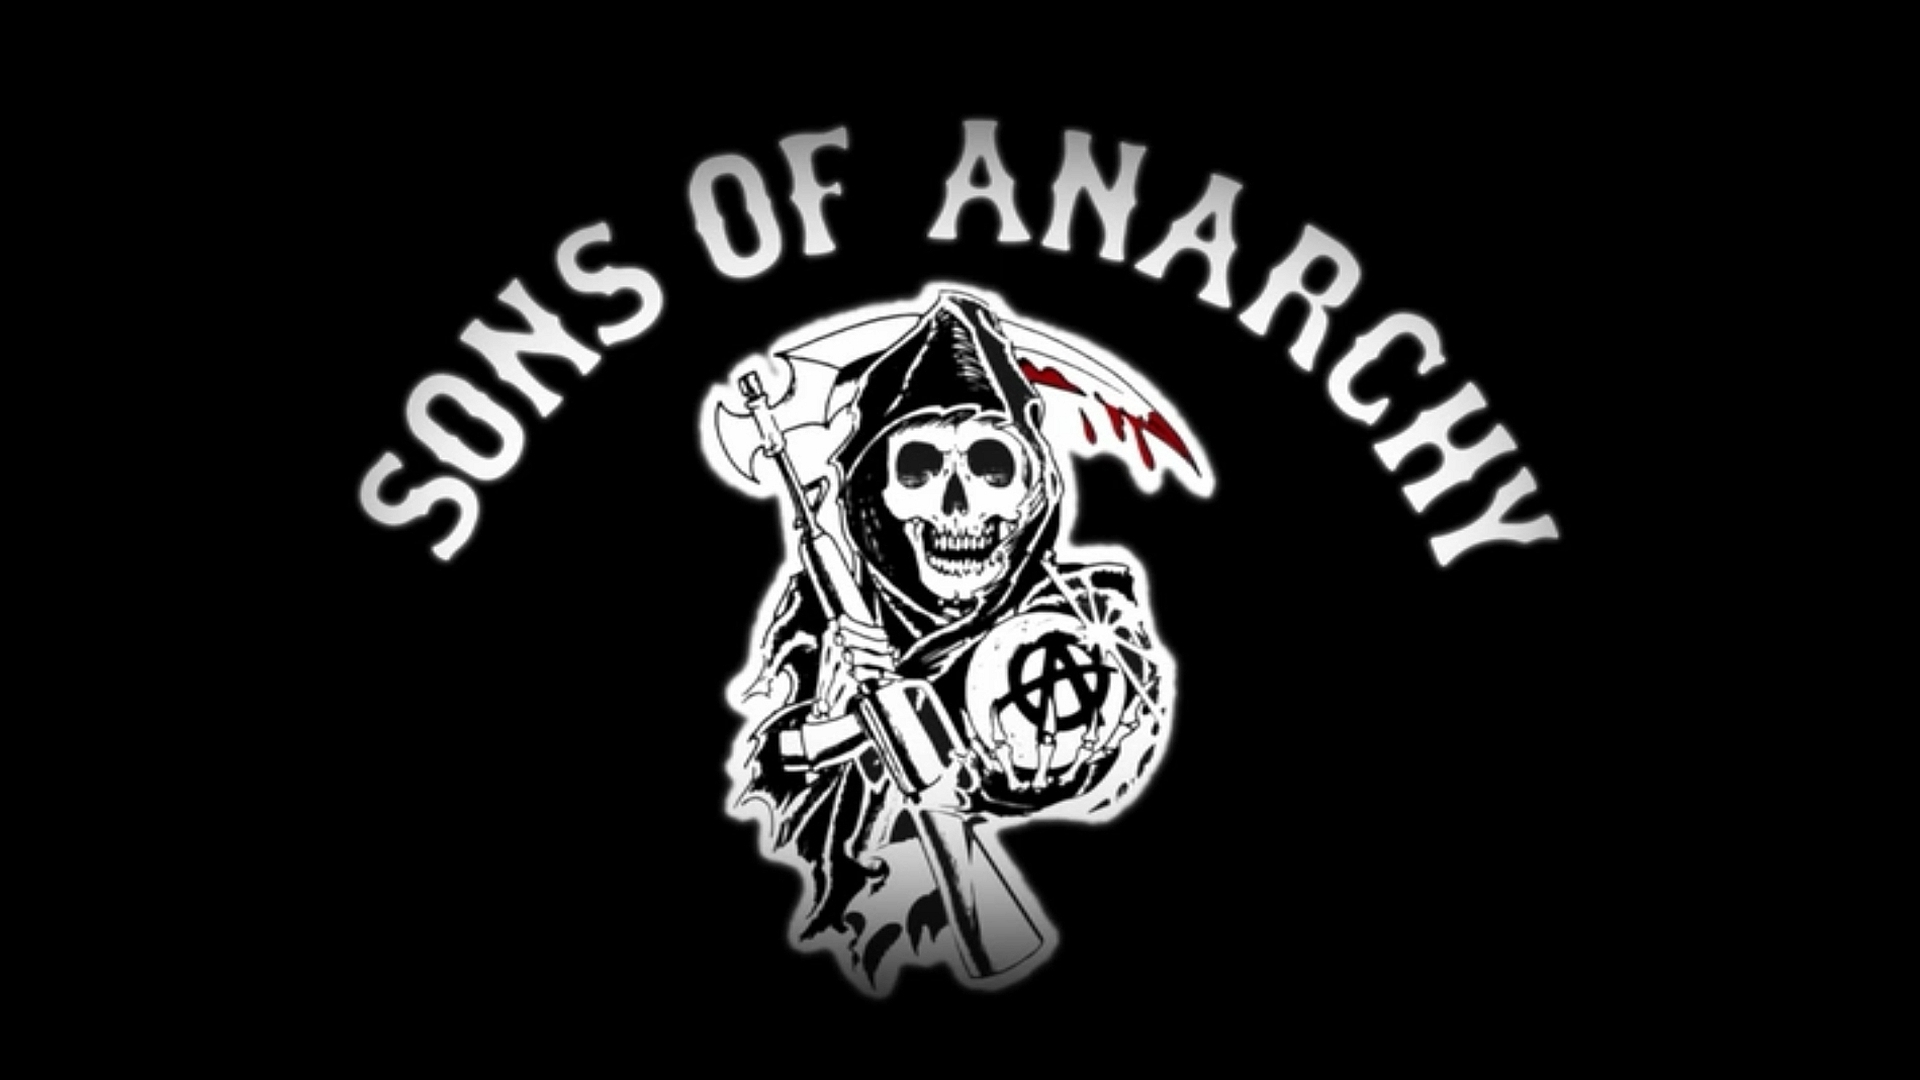 110 sons of anarchy hd wallpapers | backgrounds - wallpaper abyss